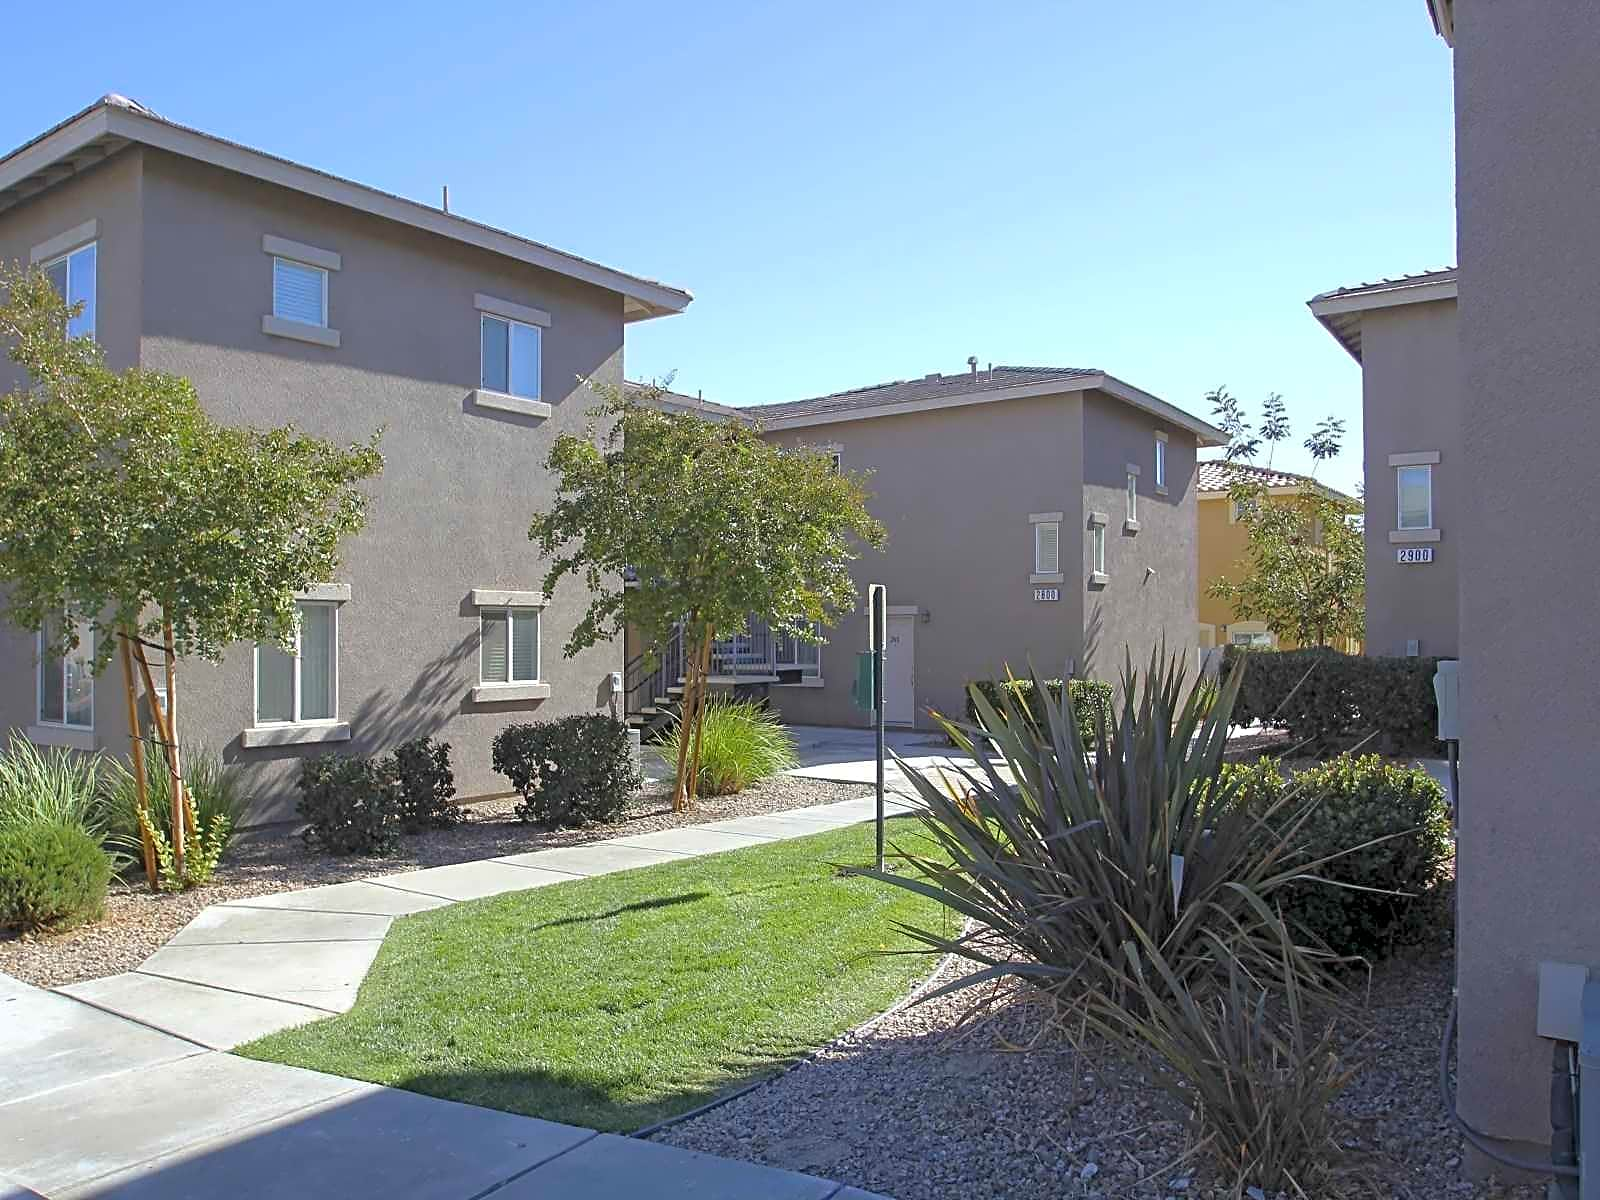 Andalusia Apartments - Victorville, CA 92395